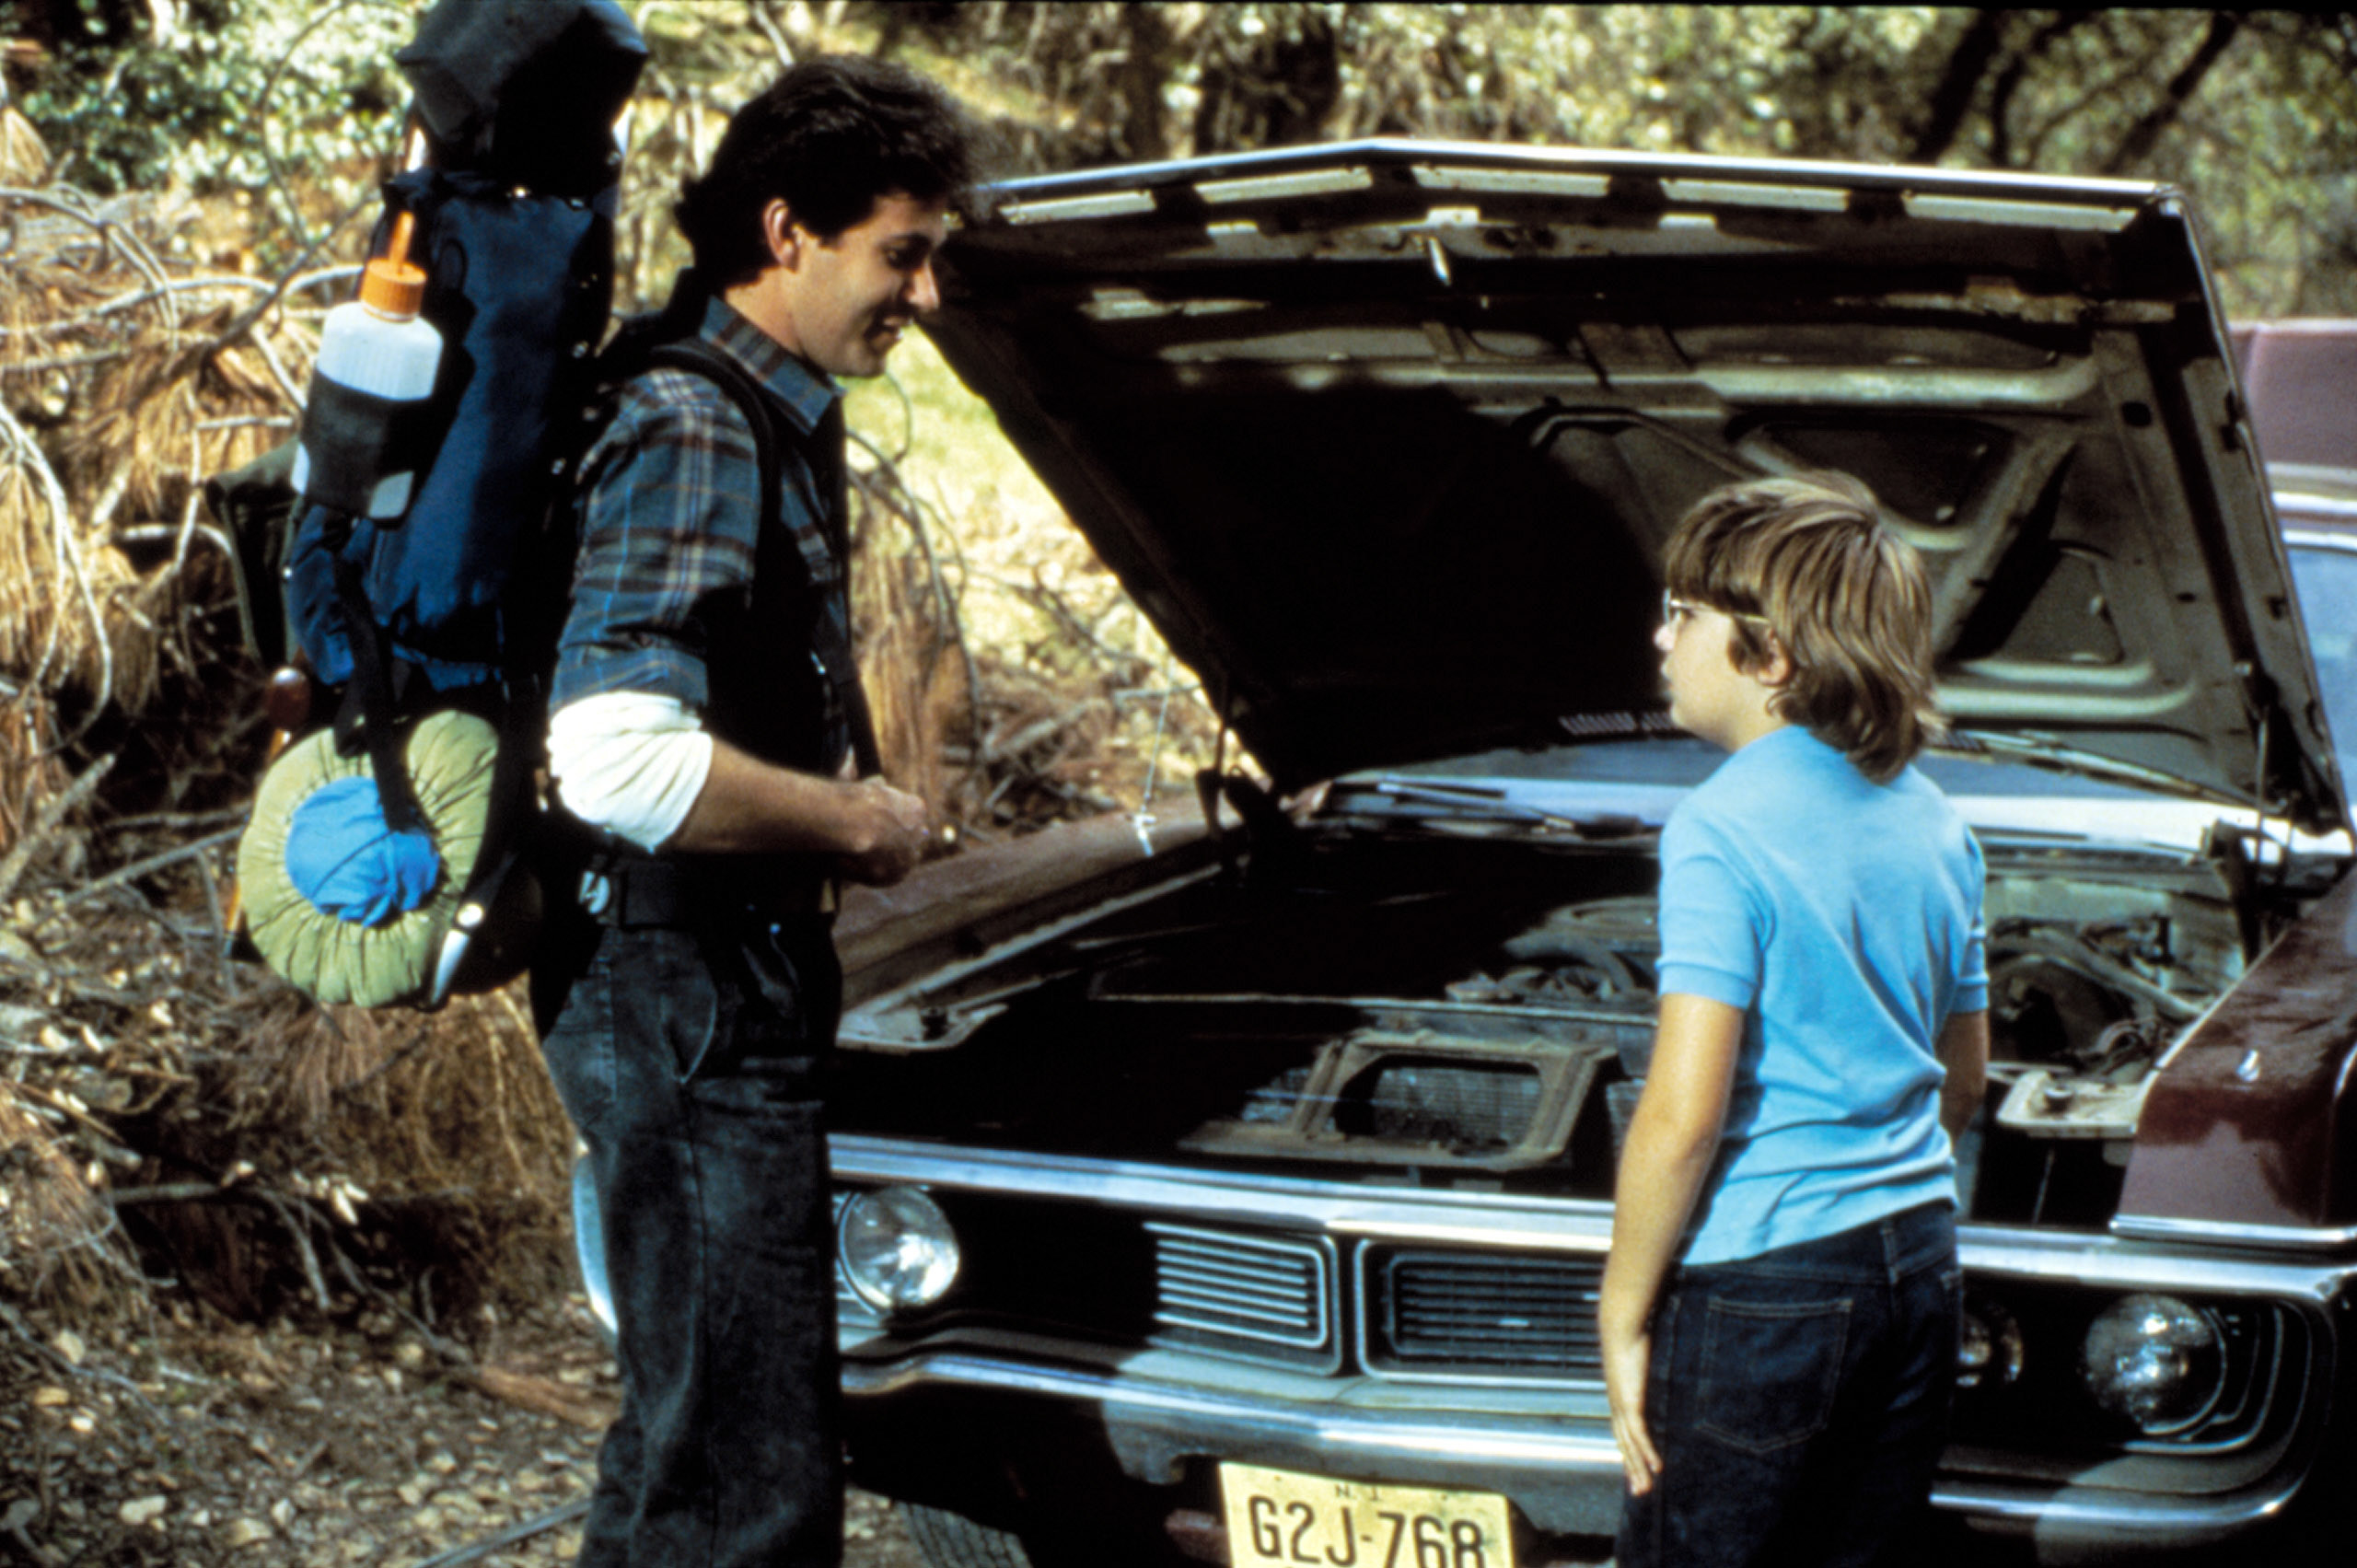 A camper talks to a young boy, Corey Feldman, who's standing in front of a broken down car